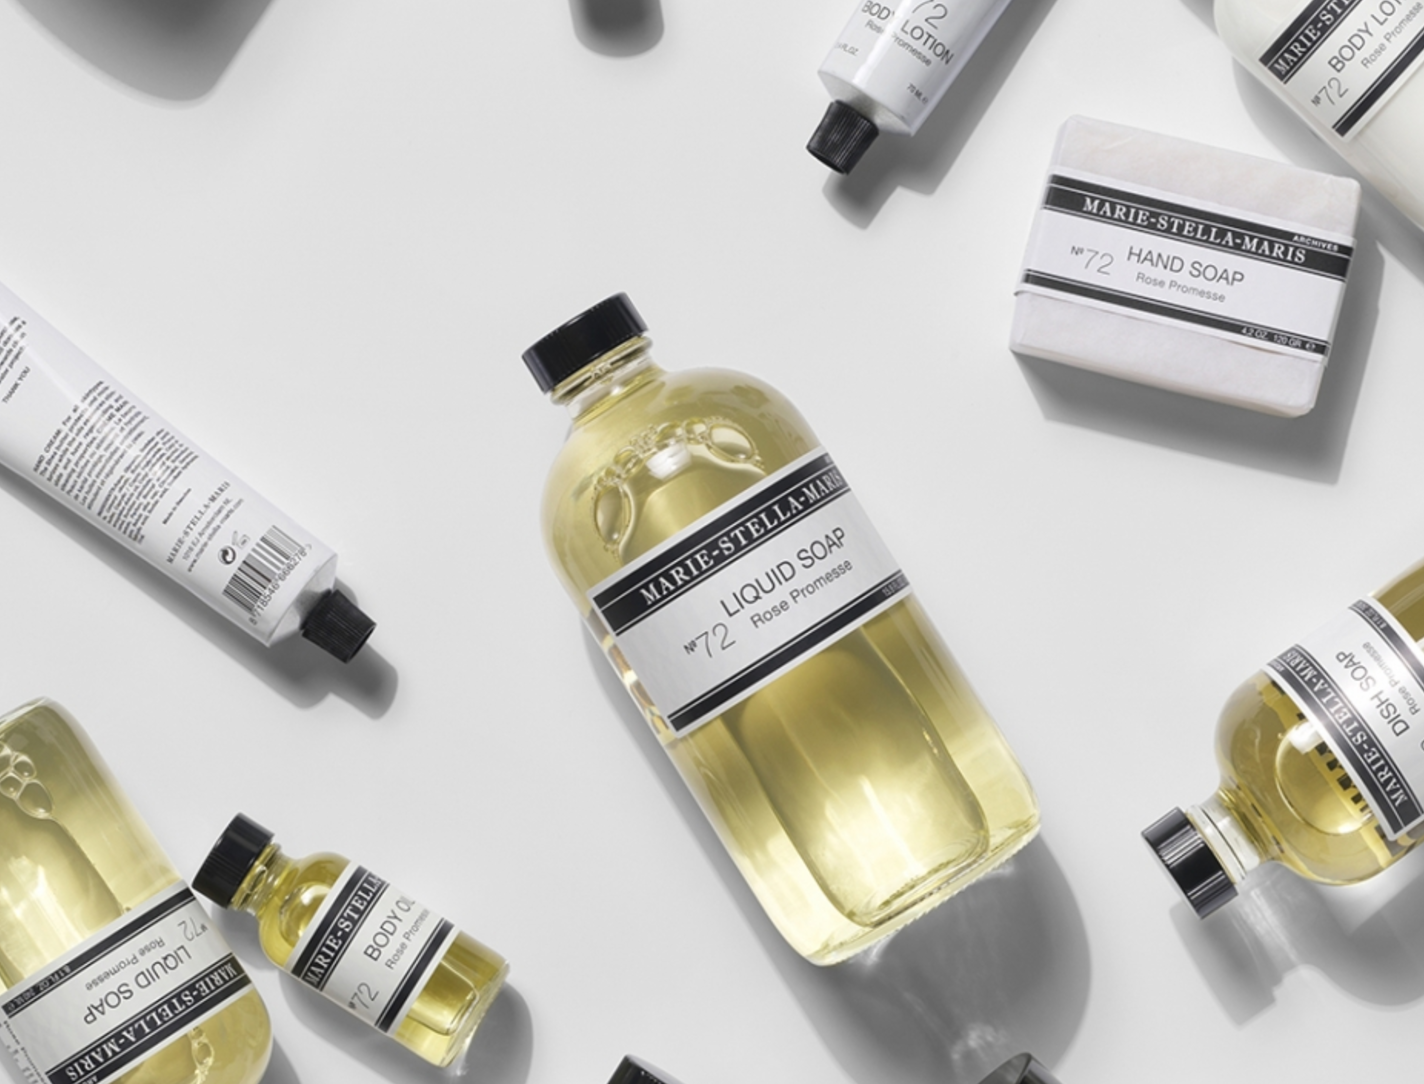 Marie stella maris - our in-house body care products